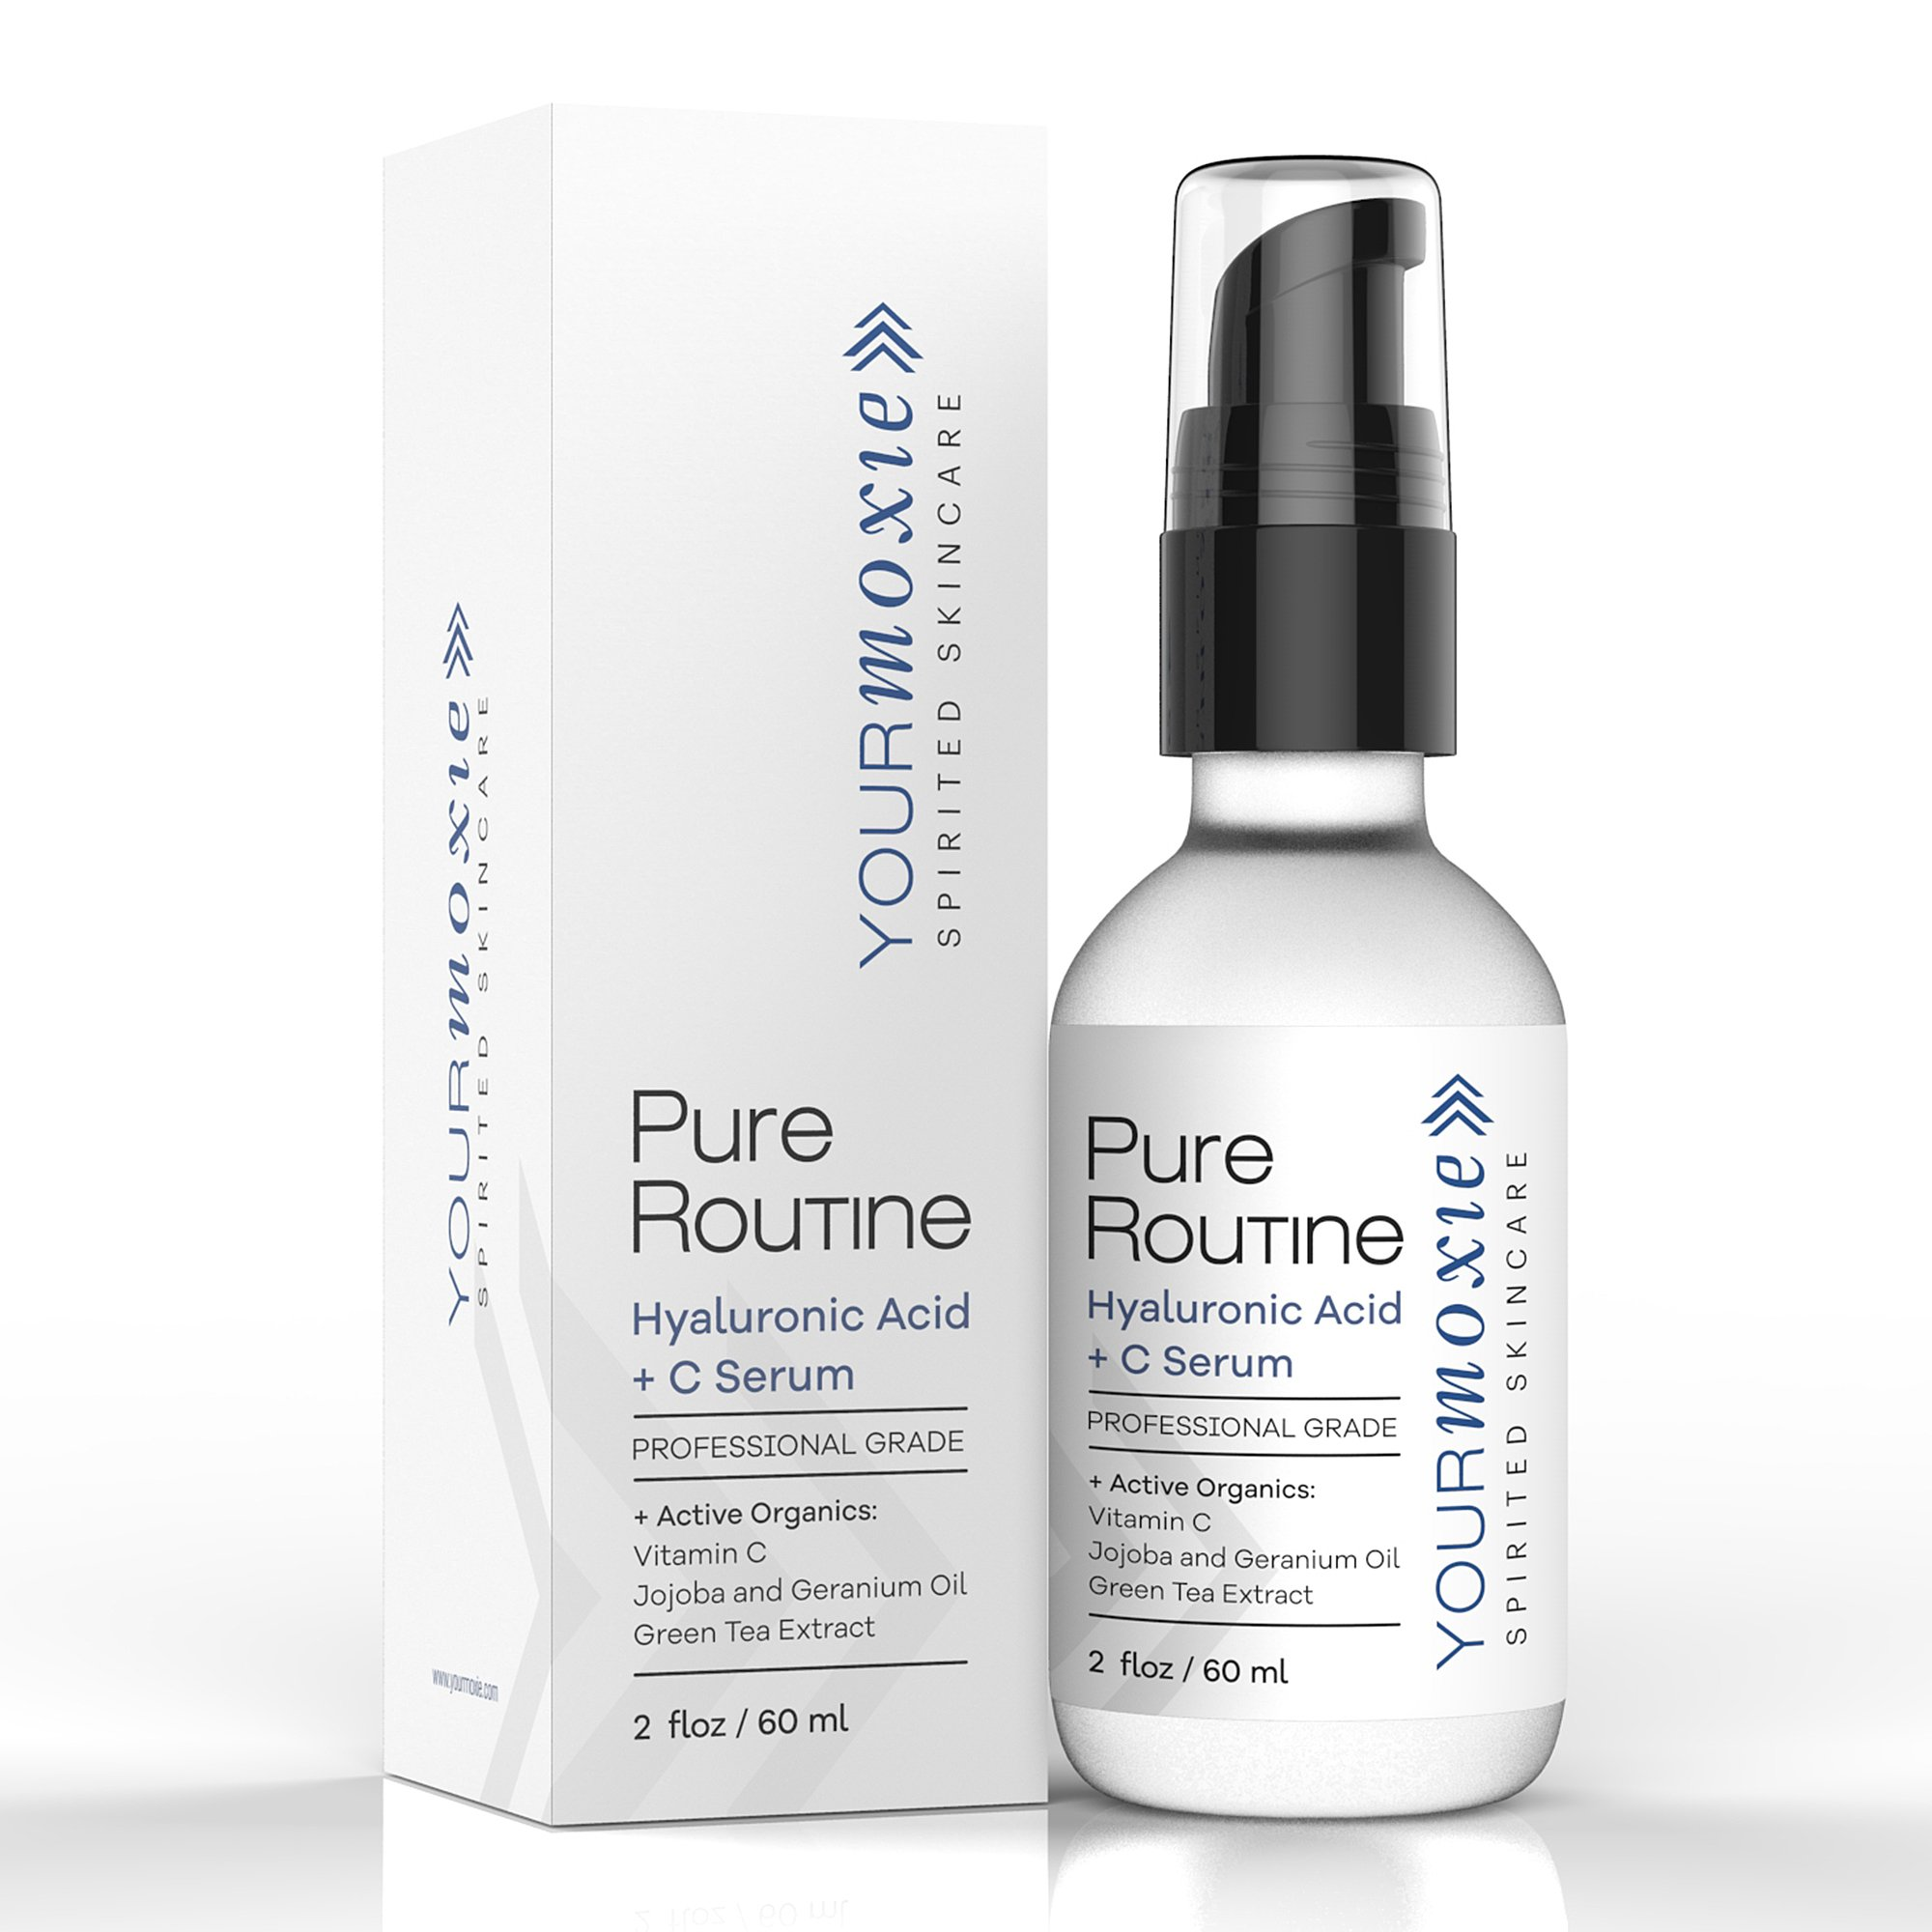 Best Hyaluronic Serum for Face - with Vitamin C - NATURAL and ORGANIC for Intense Hydration and Moisture, Non-greasy, Pure-Highest Quality, Best Hyaluronic Acid for Glowing Skin and Anti-Aging by YourMoxie